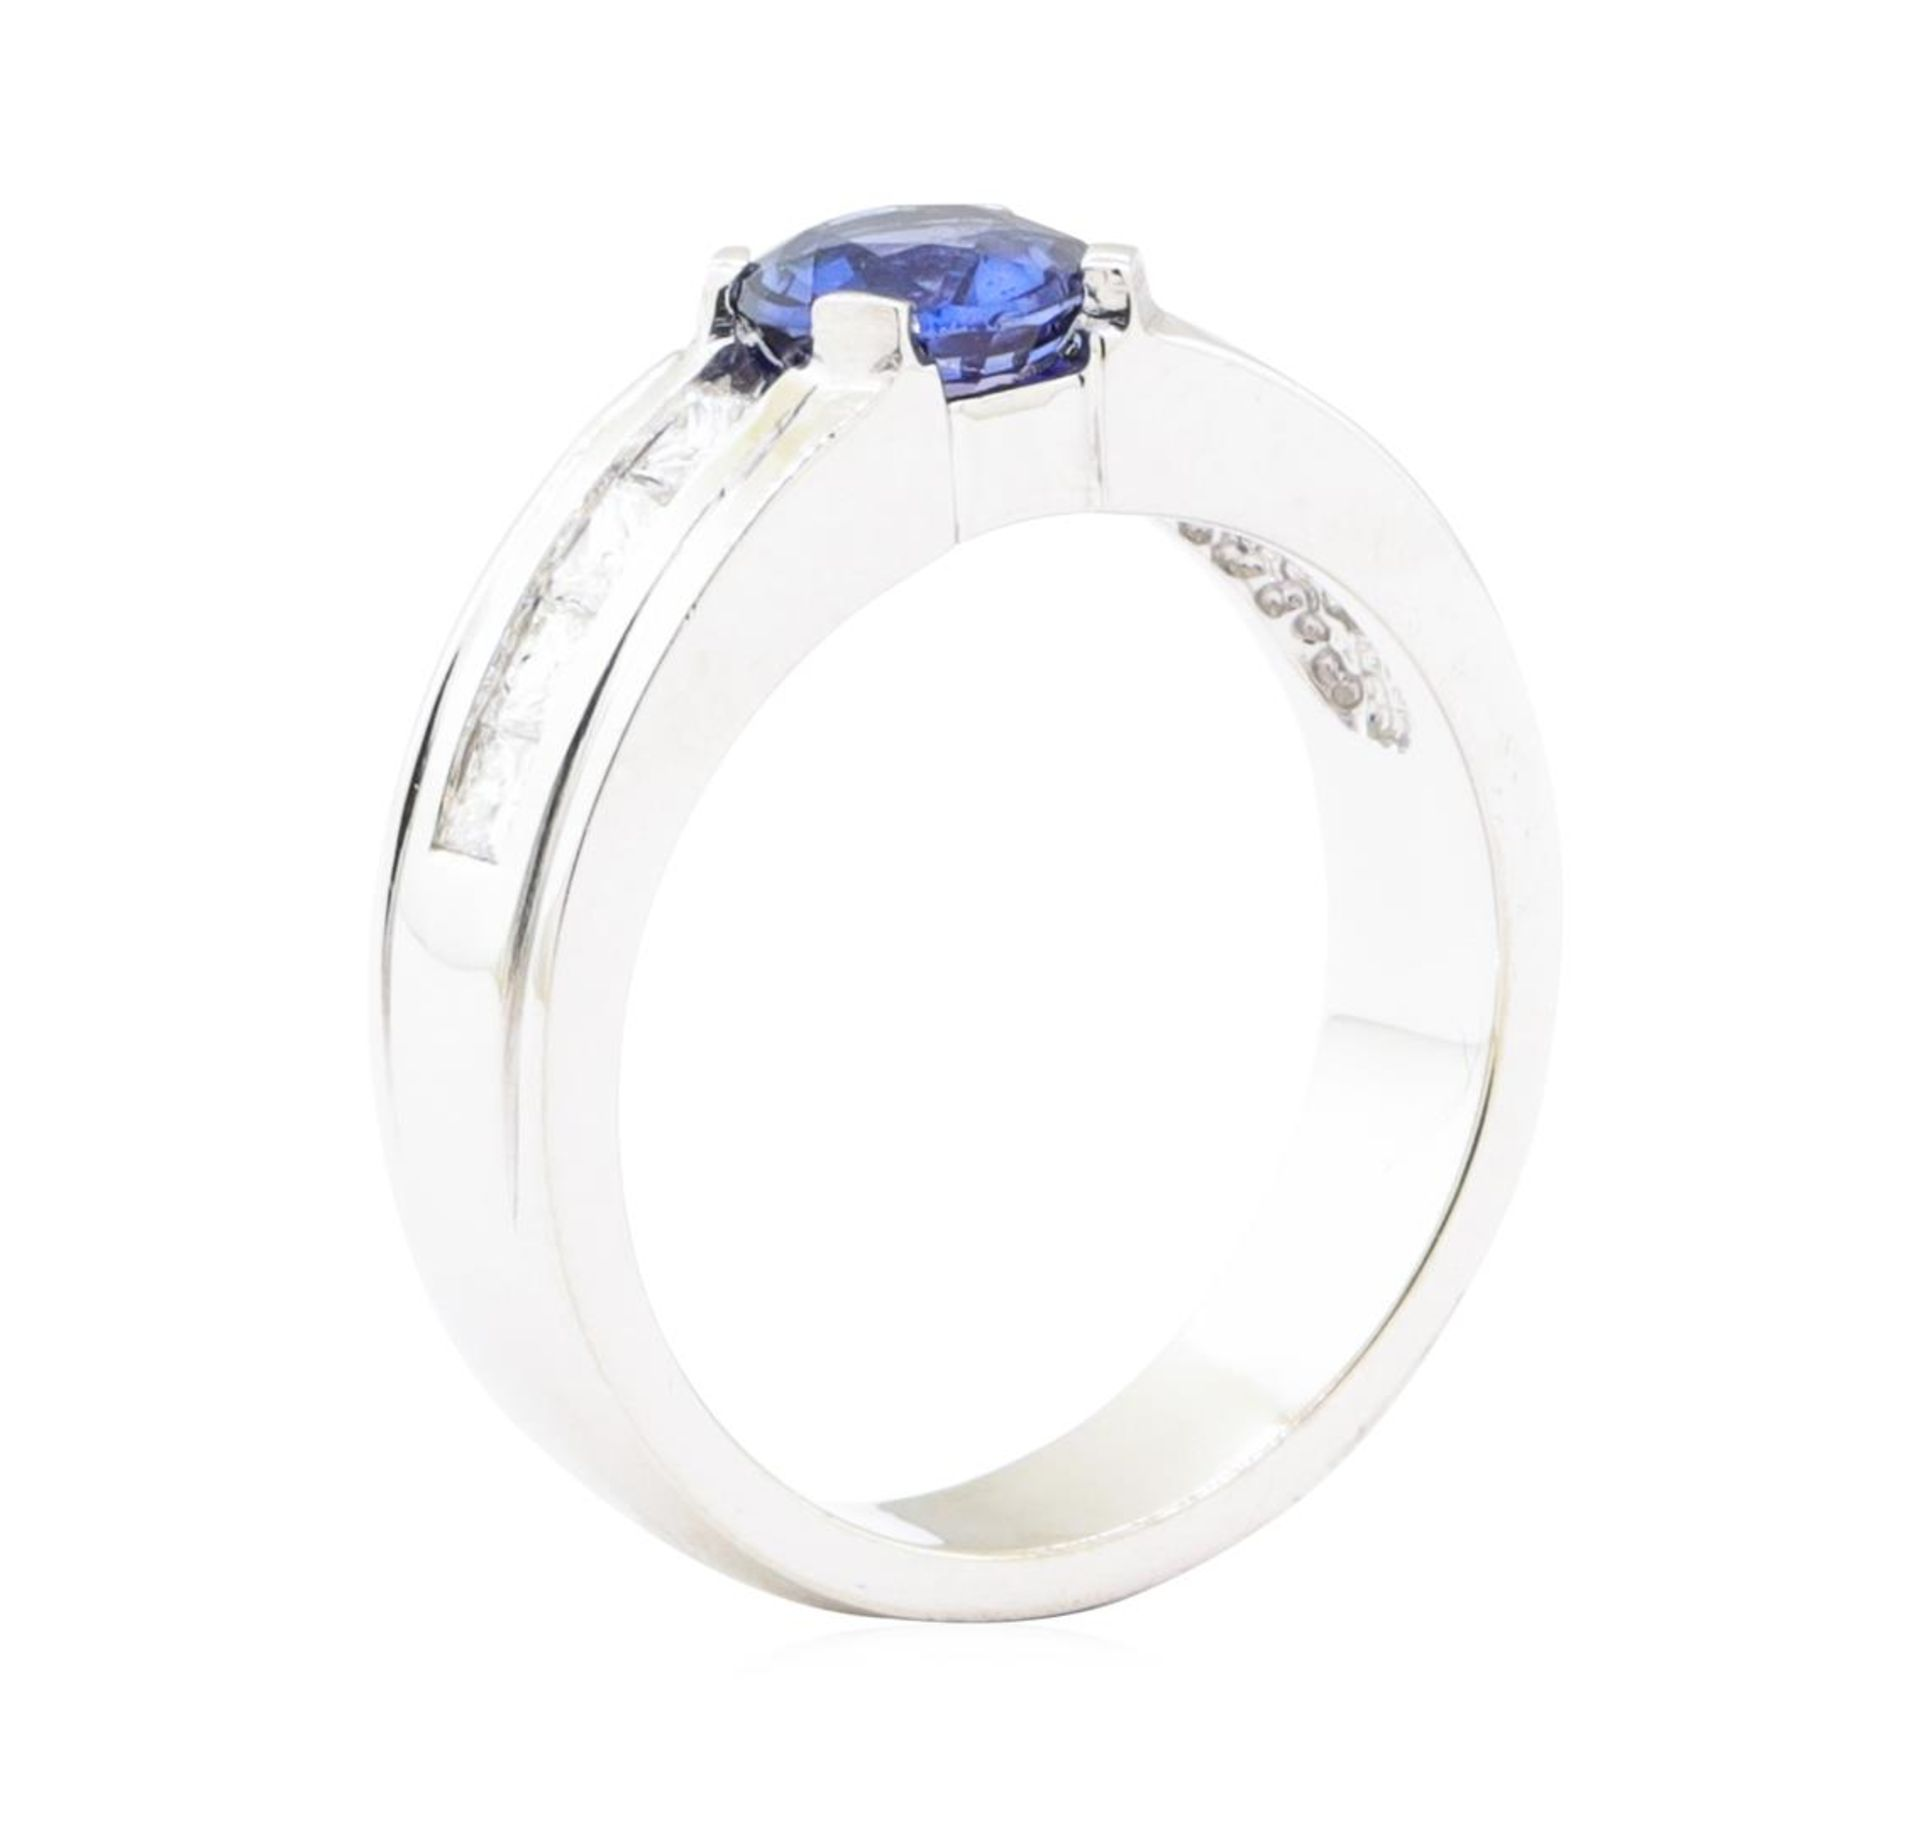 1.79ctw Sapphire and Diamond Ring - 14KT White Gold - Image 4 of 4